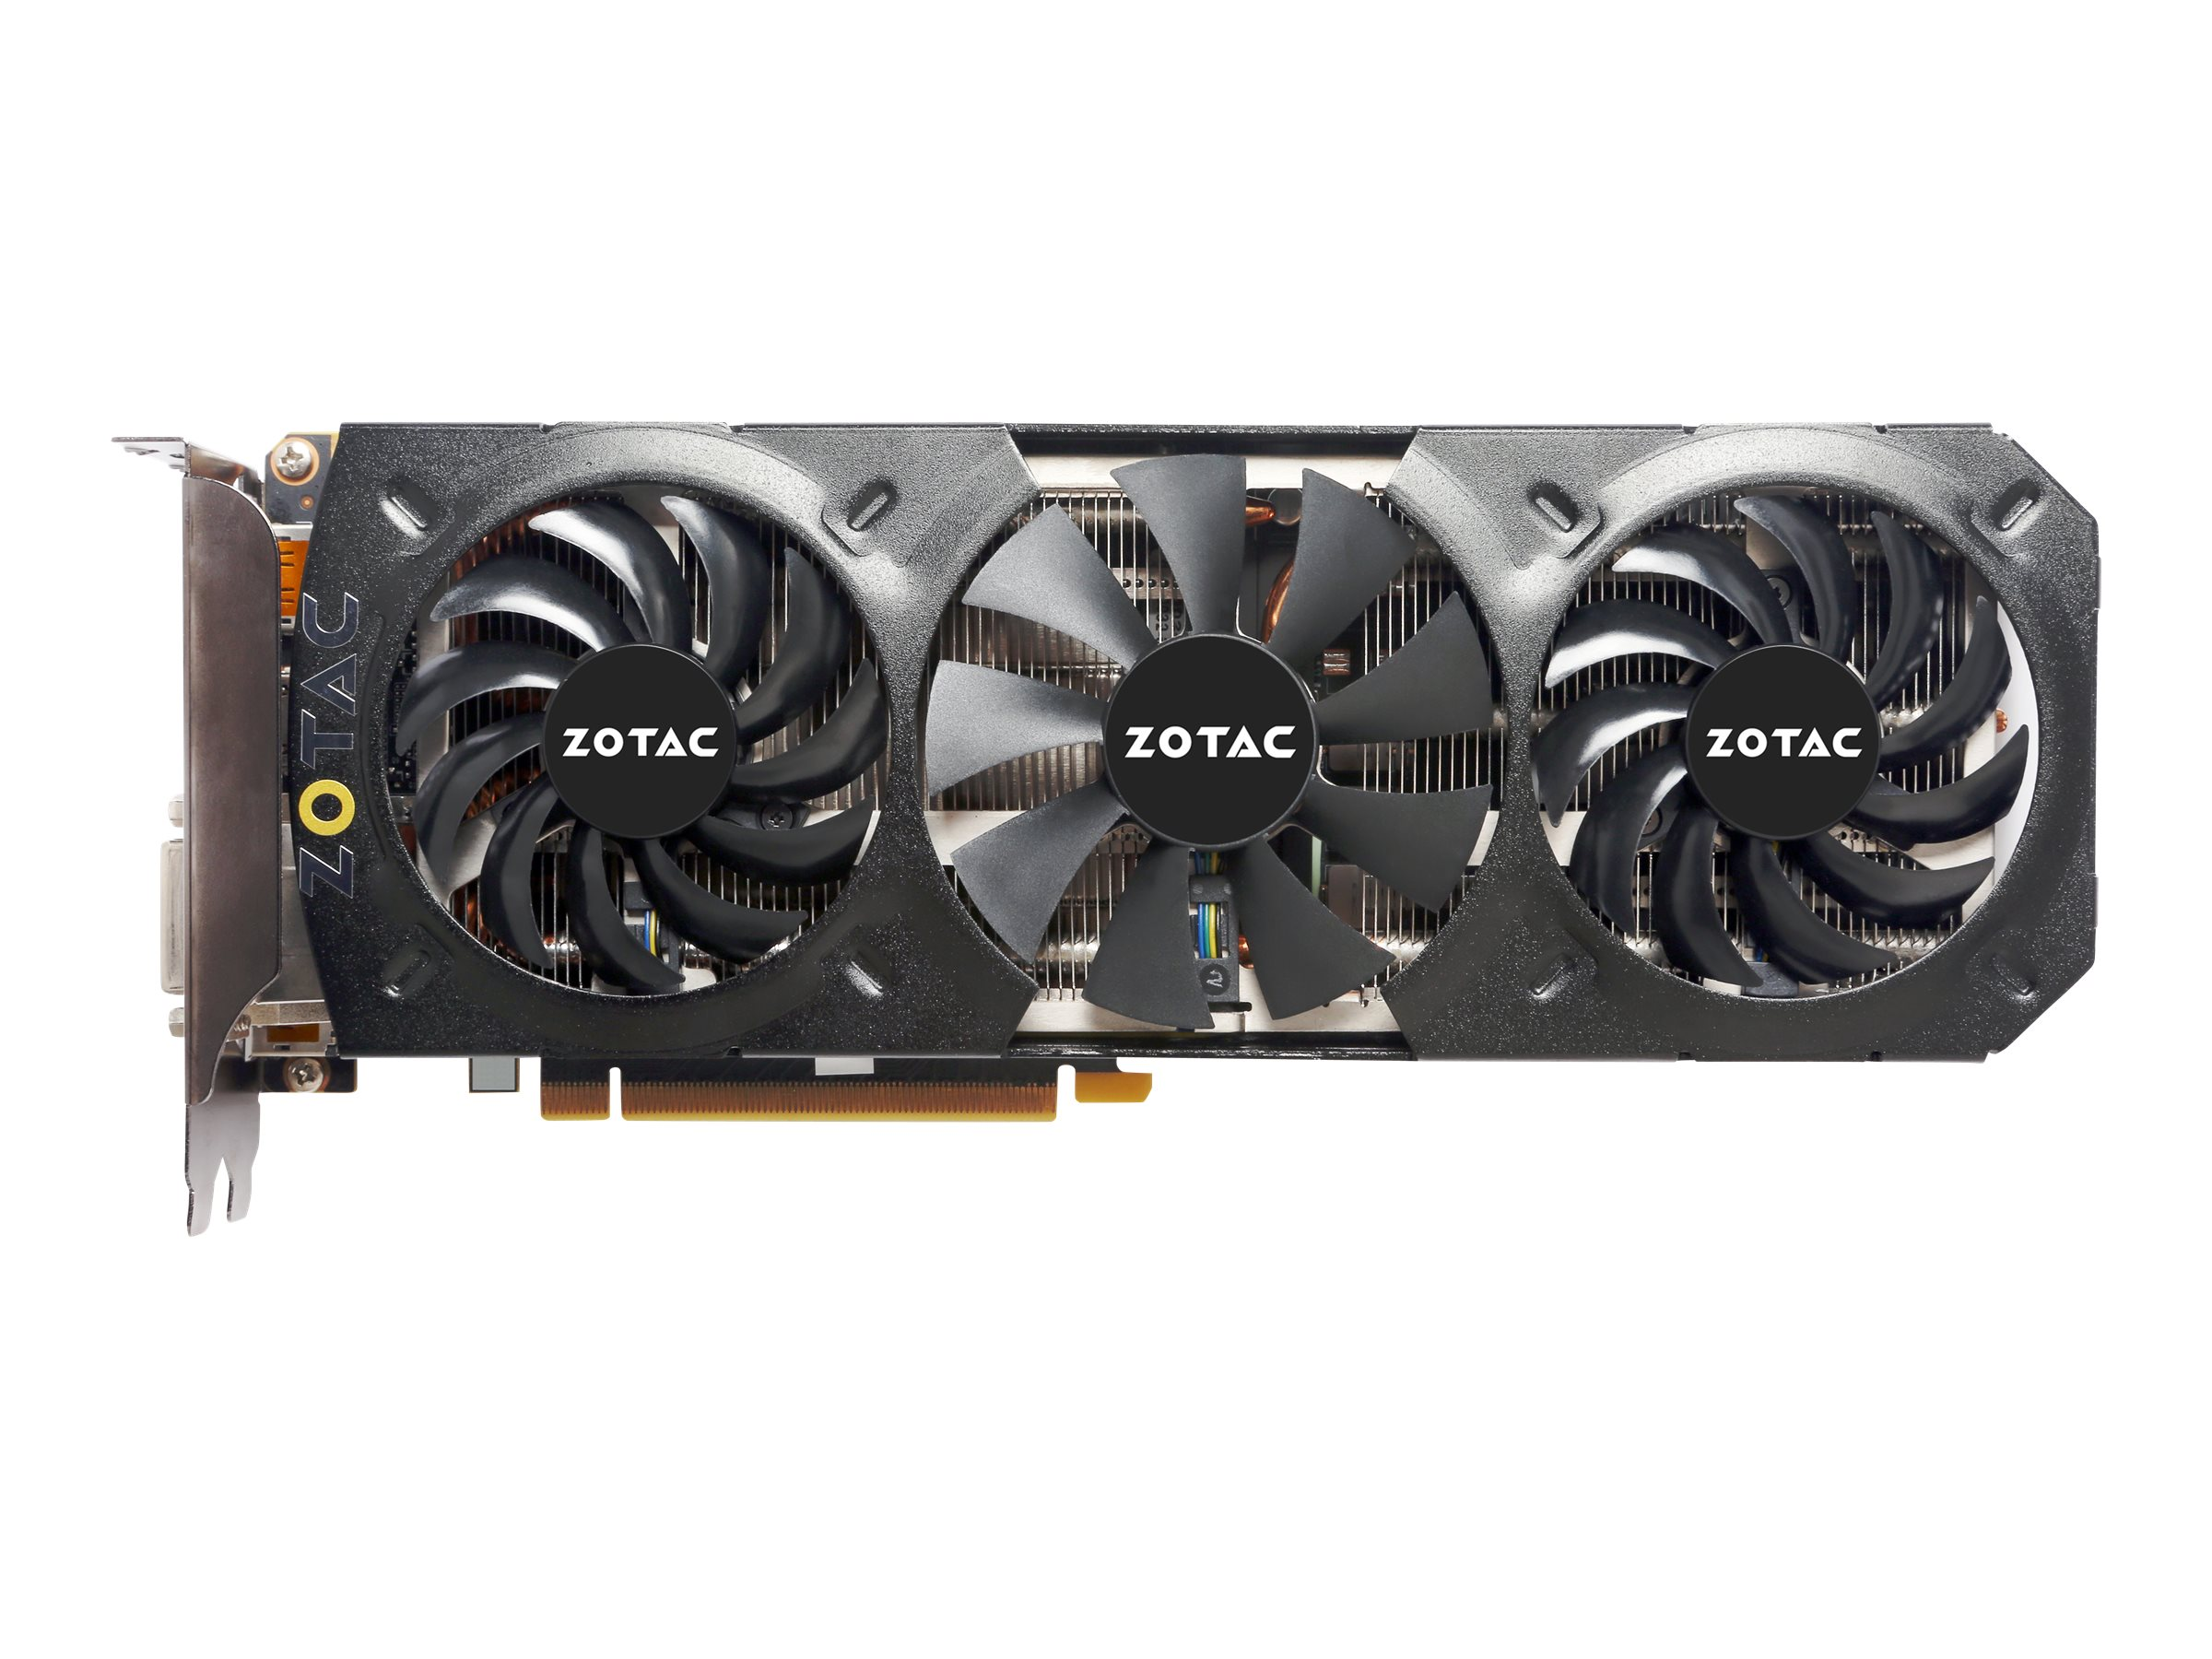 Zotac GeForce GTX 970 AMP Edition PCIe 3.0 Graphics Card, 4GB GDDR5, ZT-90110-10P